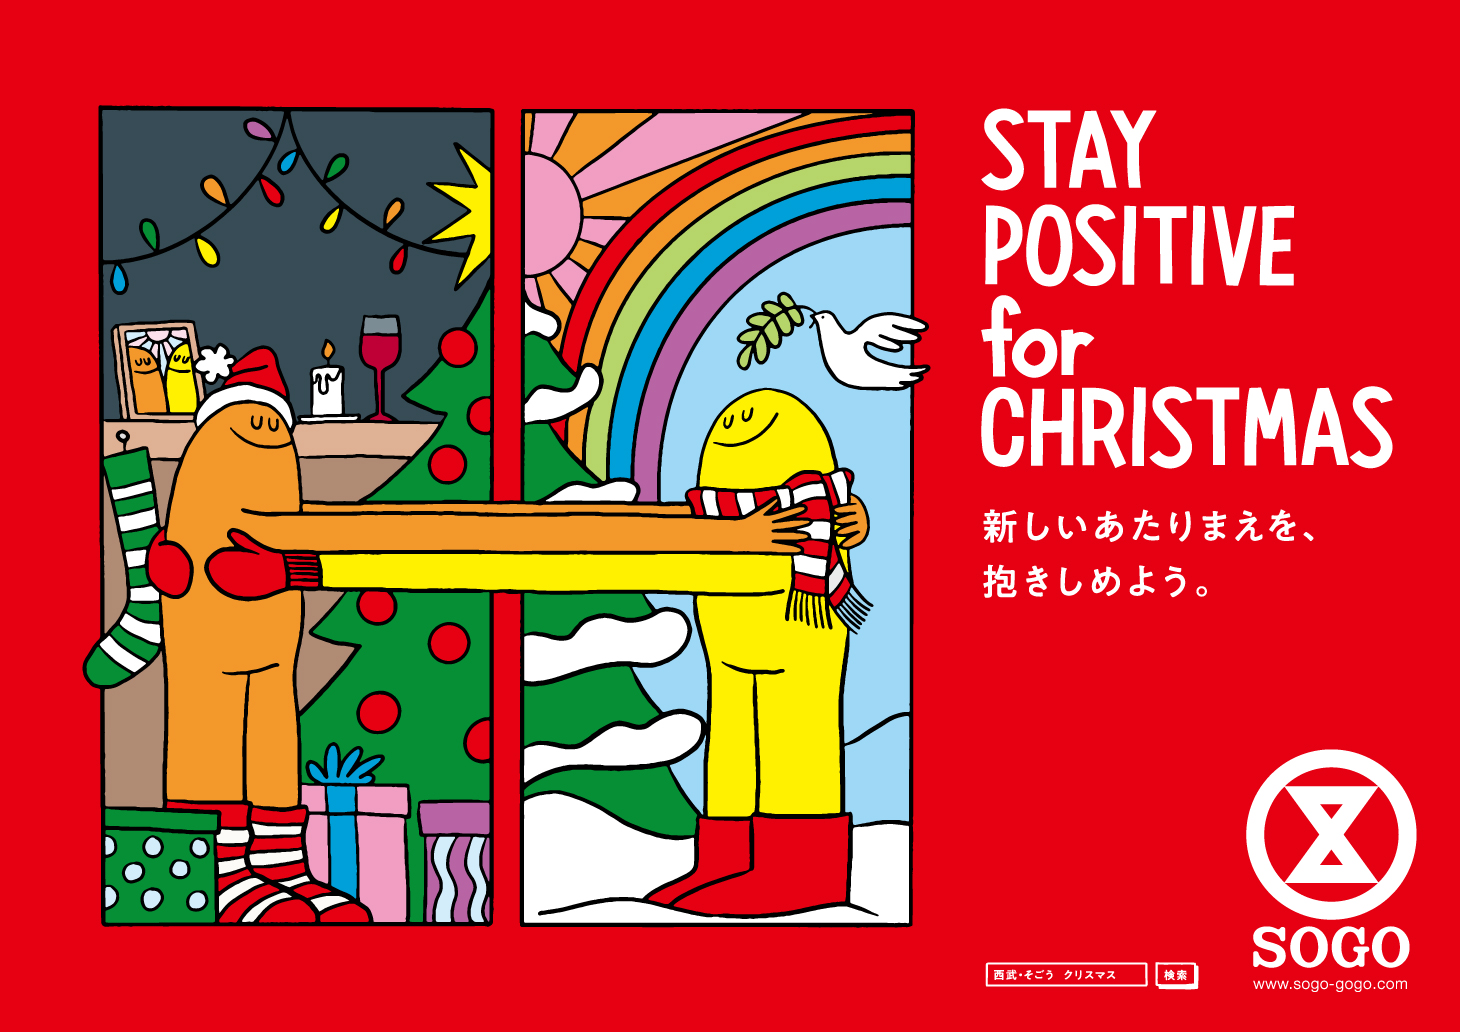 "SOGO ""STAY POSITIVE for CHRISTMAS"""